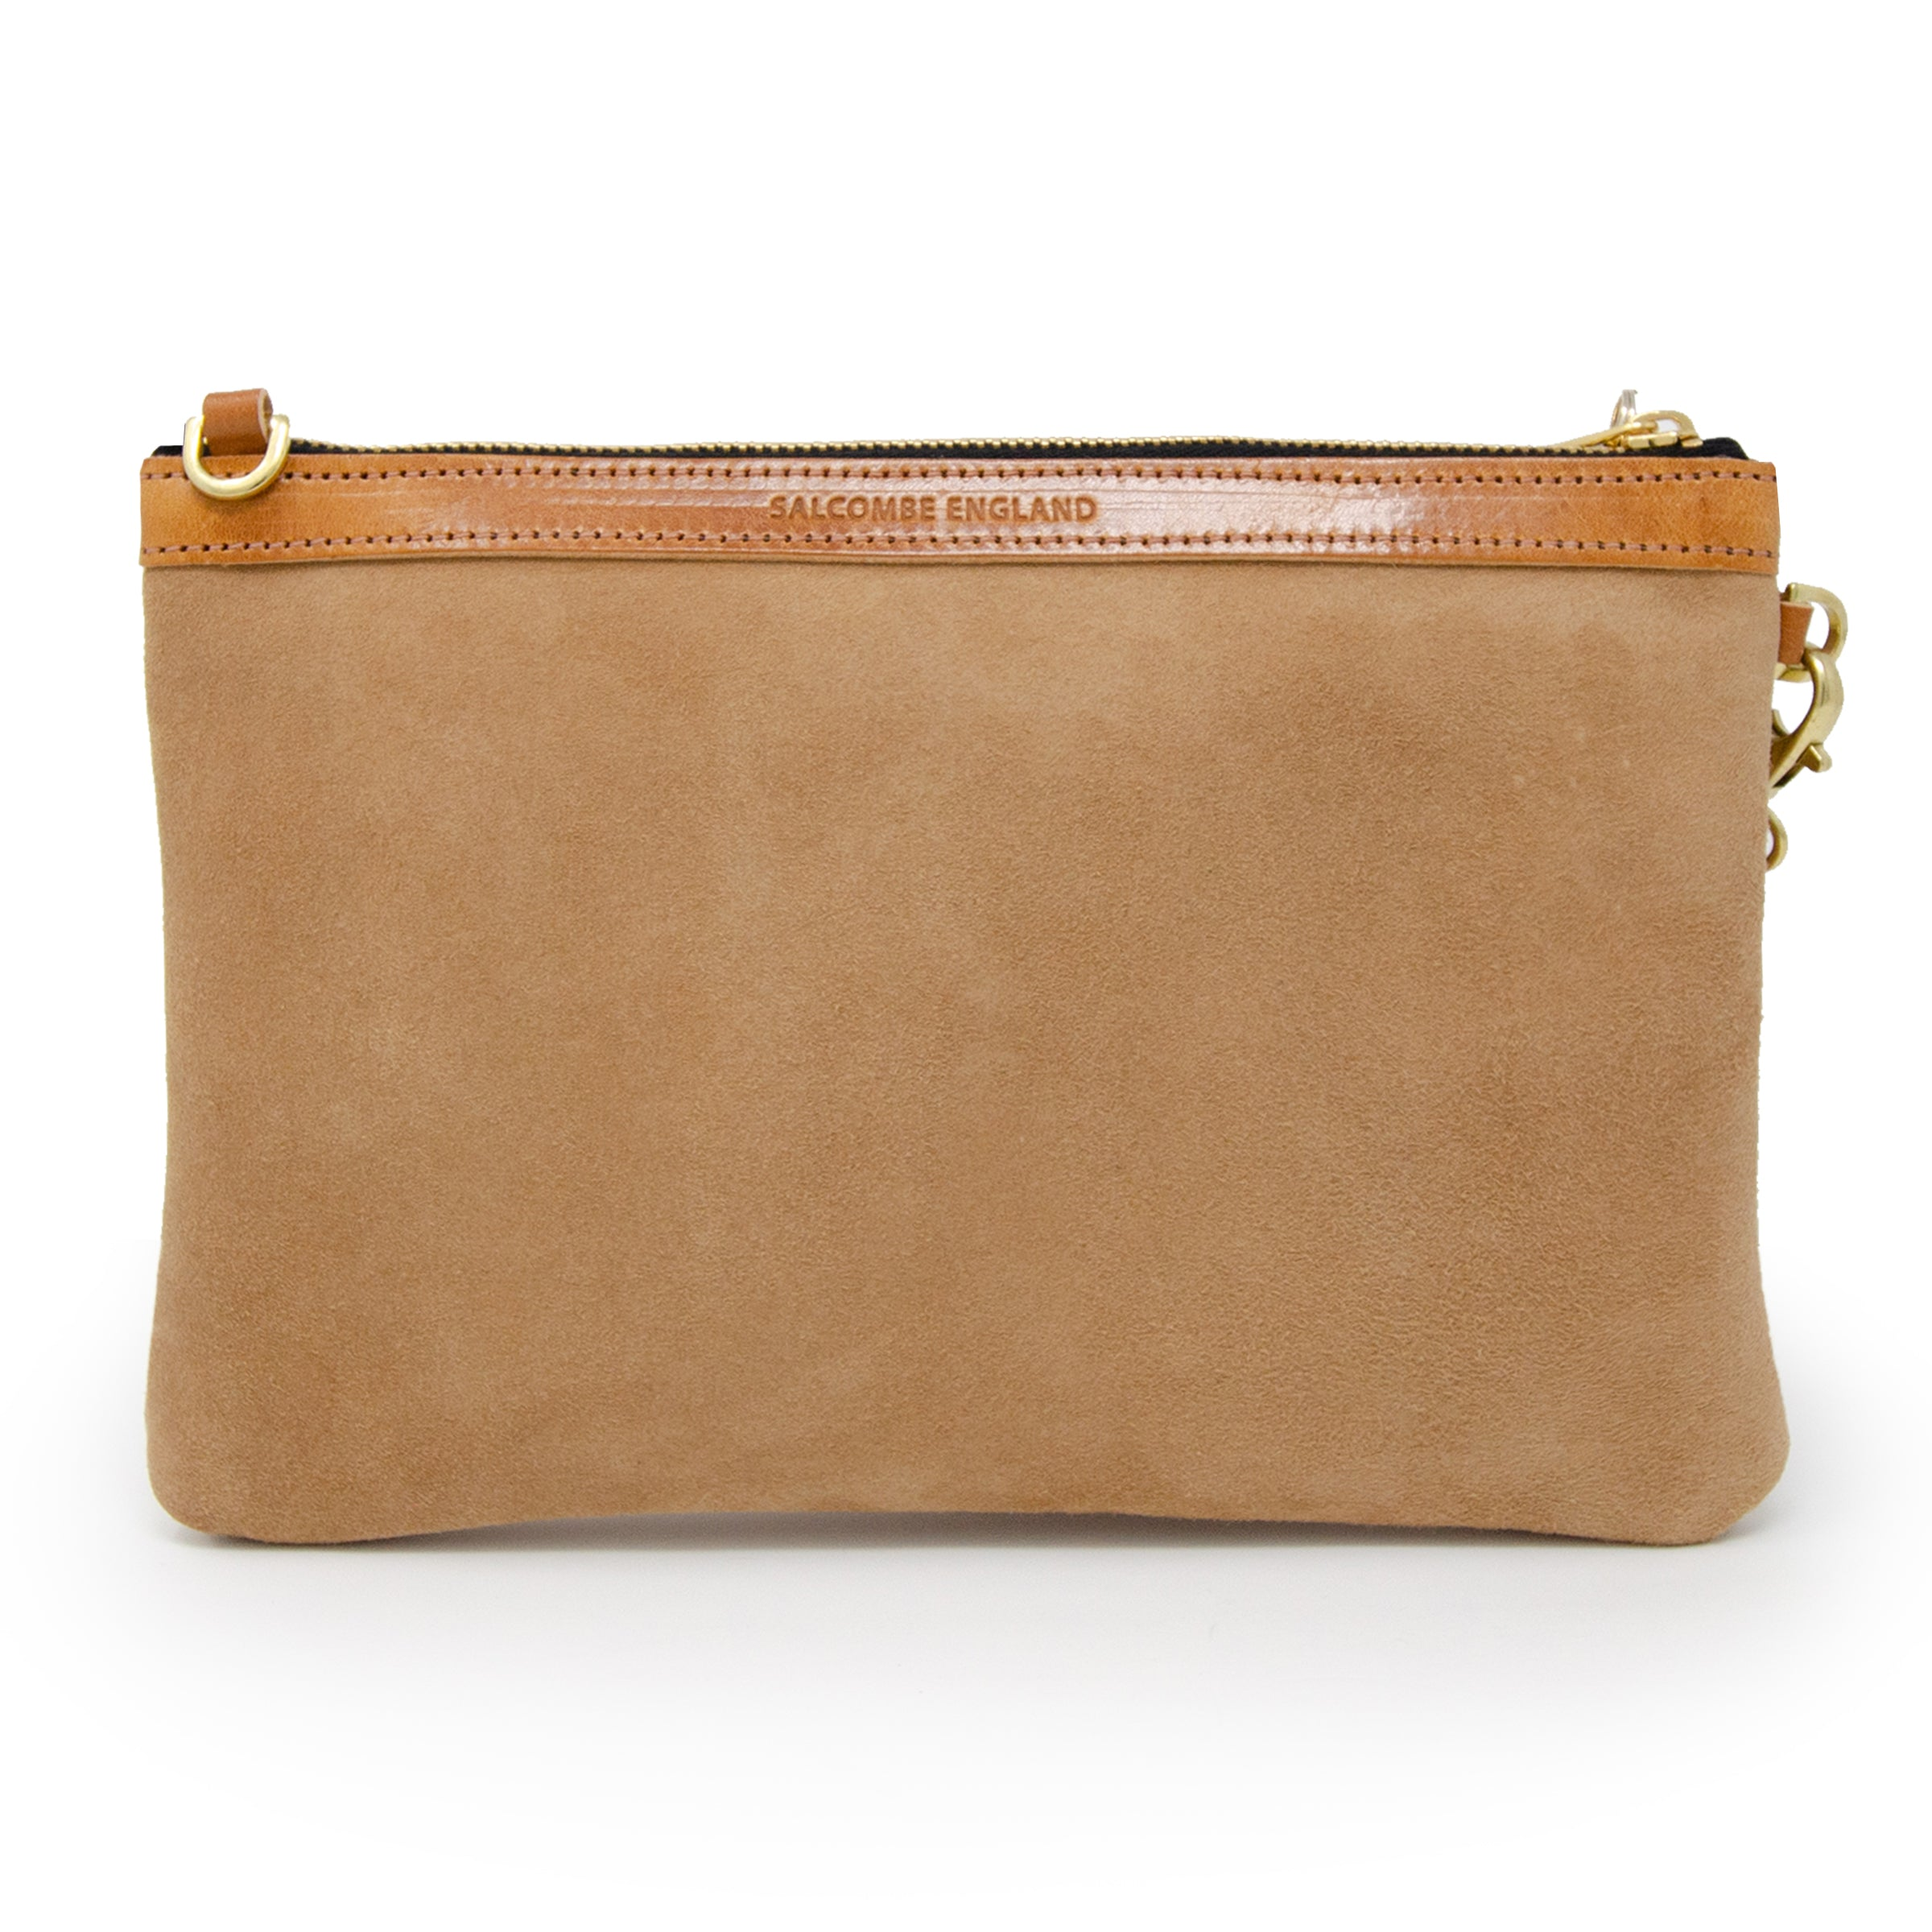 Premium Diana Clutch - Camel Suede - Will Bees Bespoke